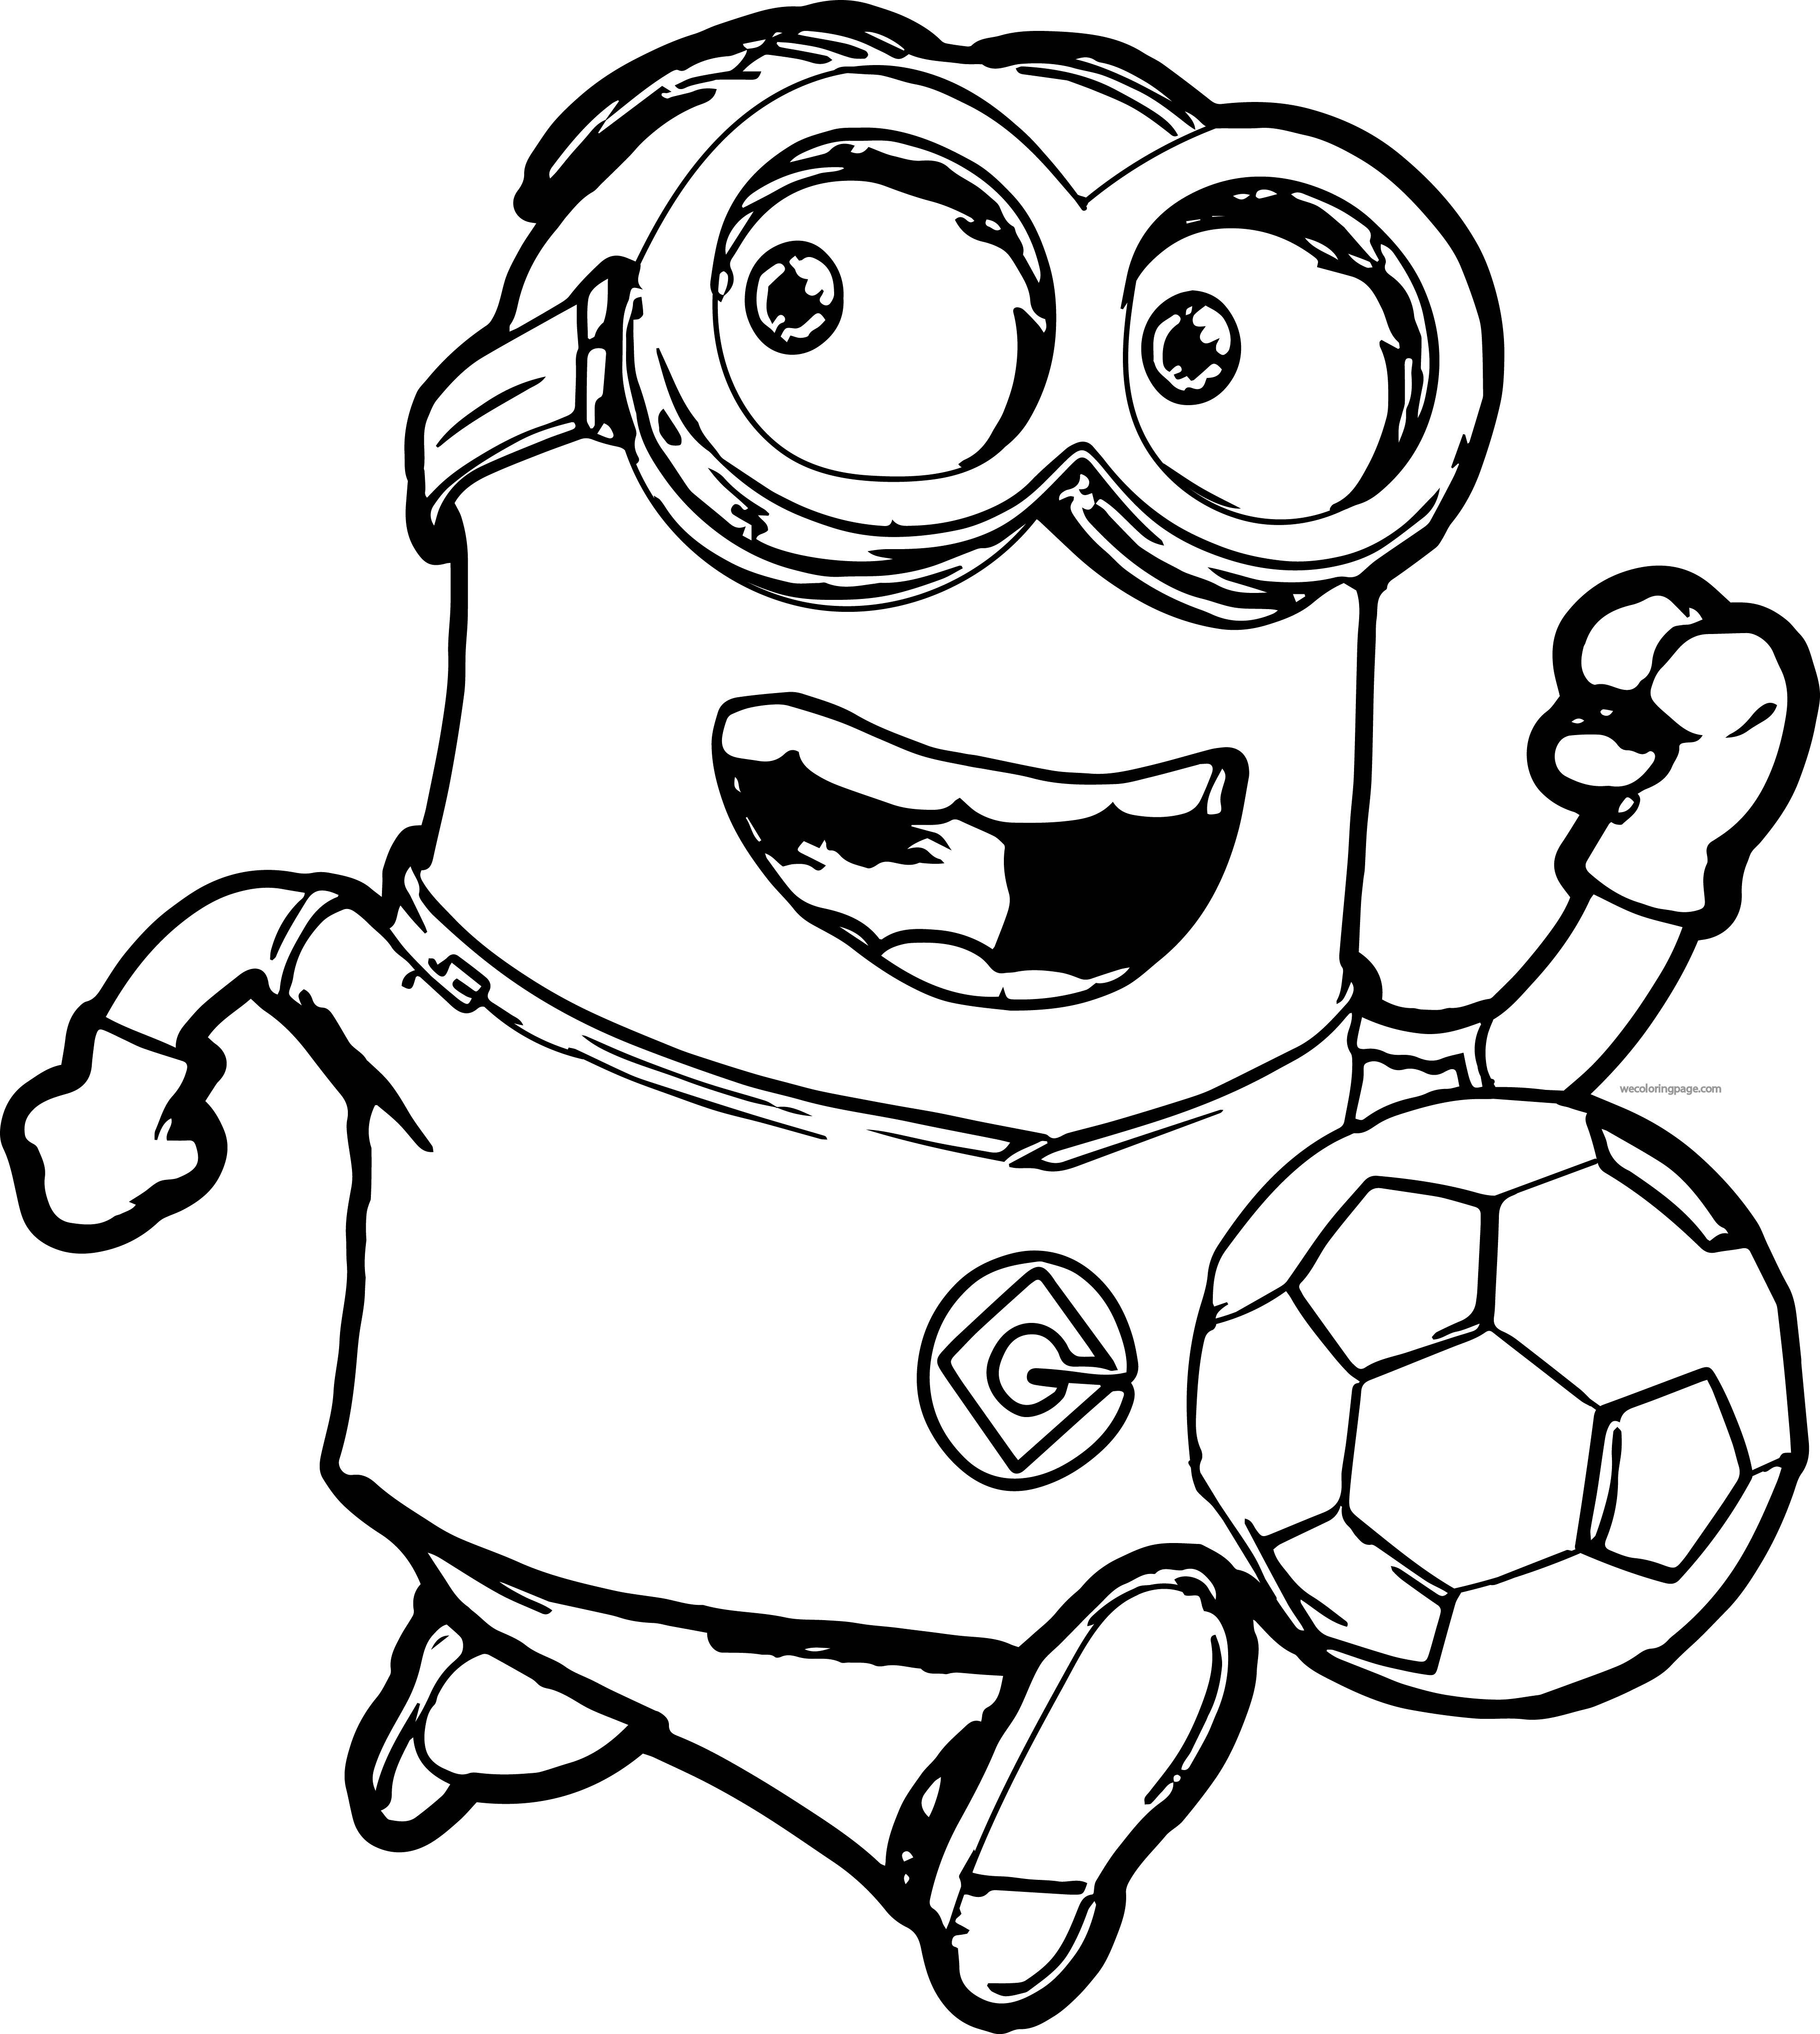 Minion Soccer Player Coloring Pages   Minion coloring ...